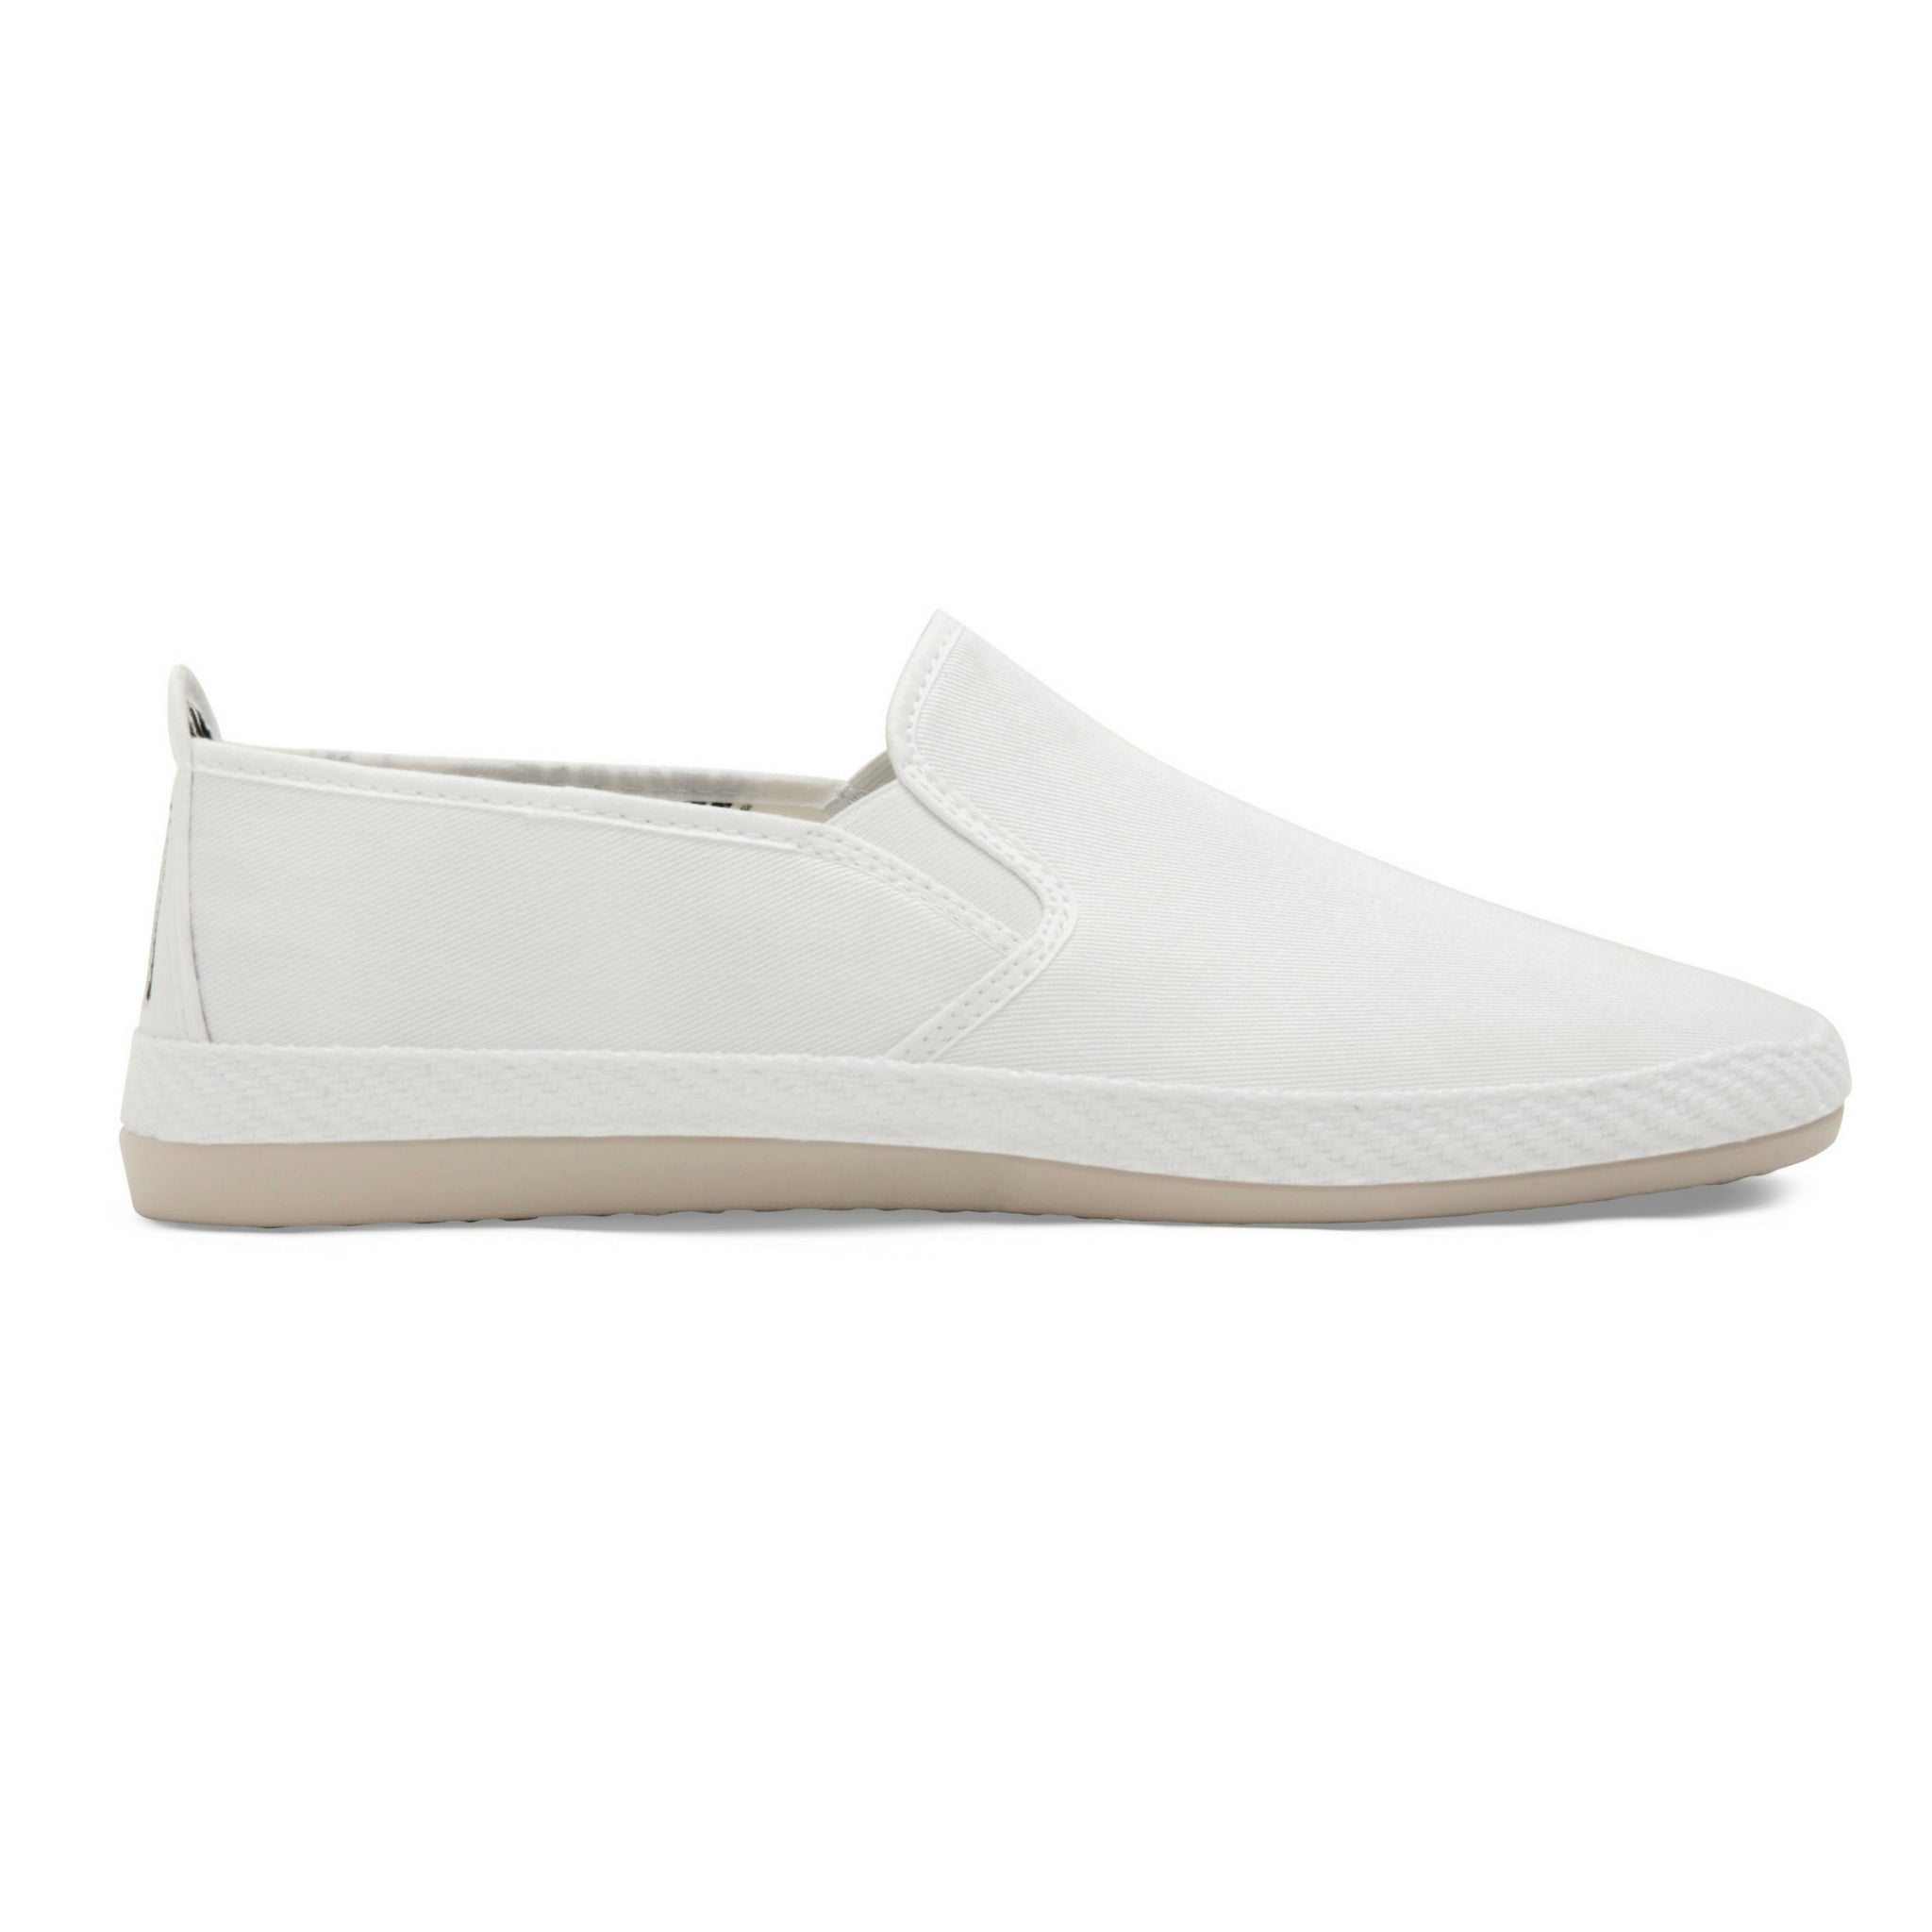 b6e27f16f72 Official Flossy Plimsolls & Shoes: Mens, Womens & Kids – Flossy Shoes